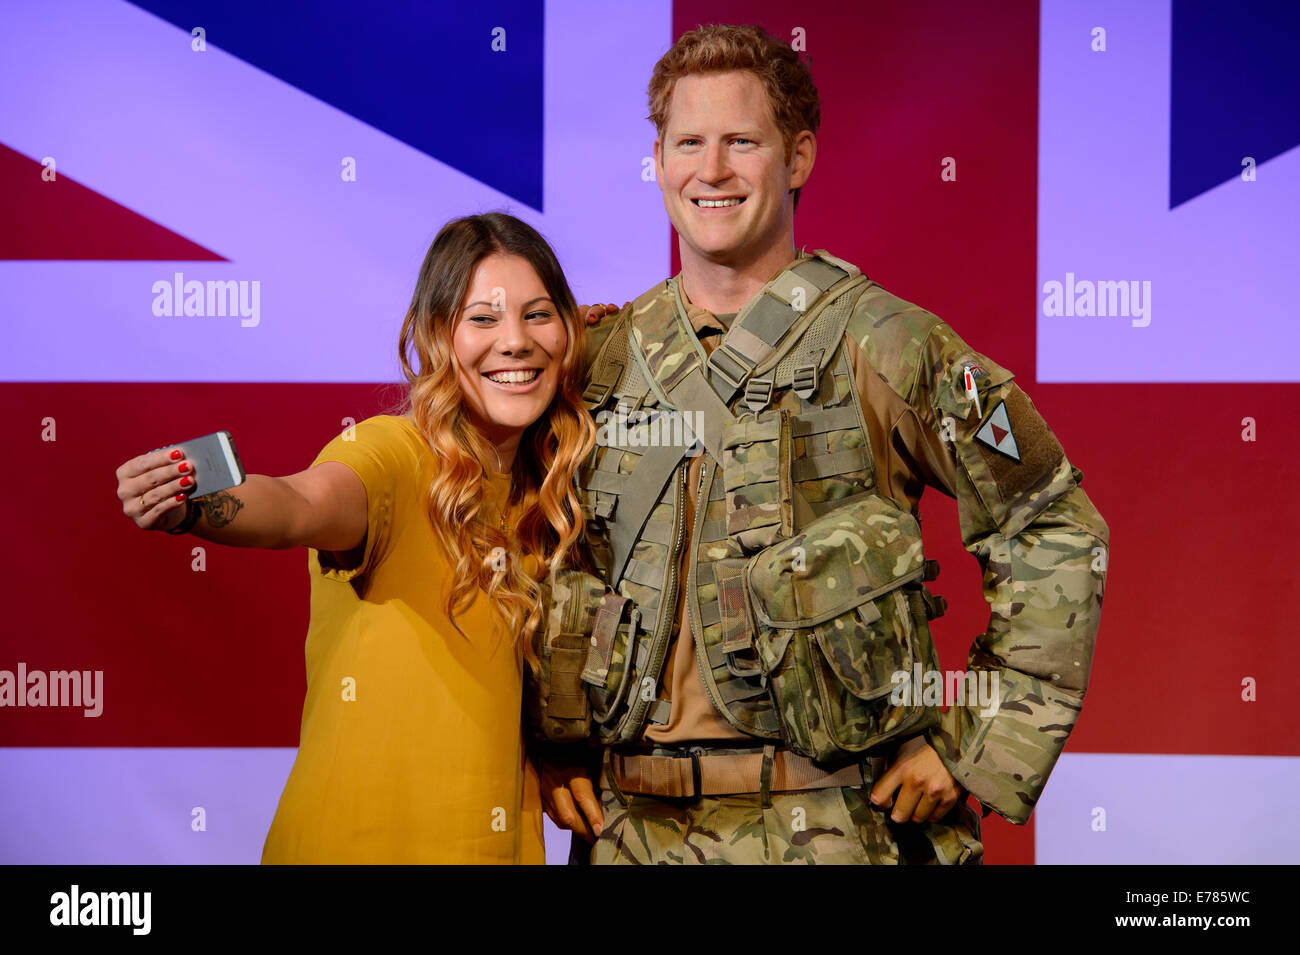 Madame Tussauds London has revealed a new wax figure of His Royal Highness Prince Harry. - Stock Image